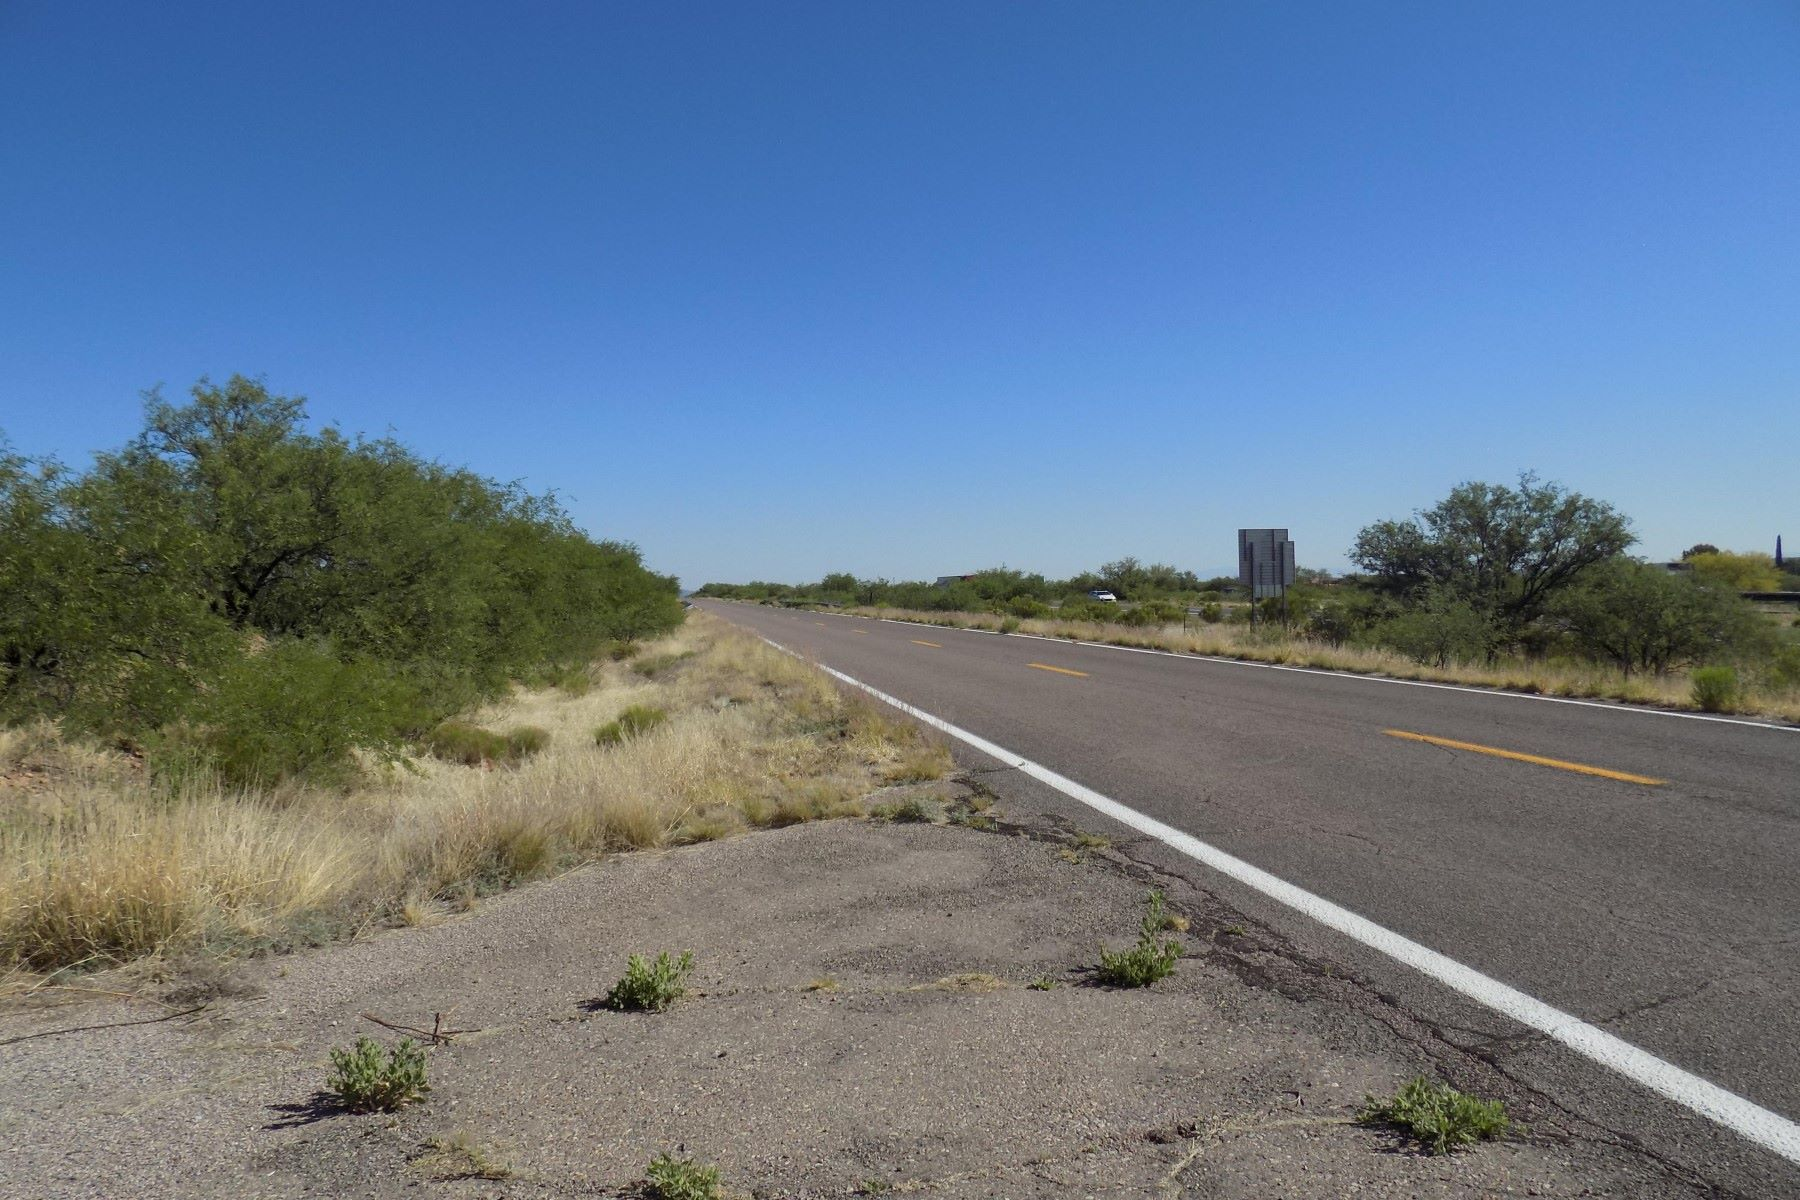 Land for Sale at Fully platted and county approved subdivision ready to go TBD W FRONTAGE Road 1-80 Tubac, Arizona 85646 United States